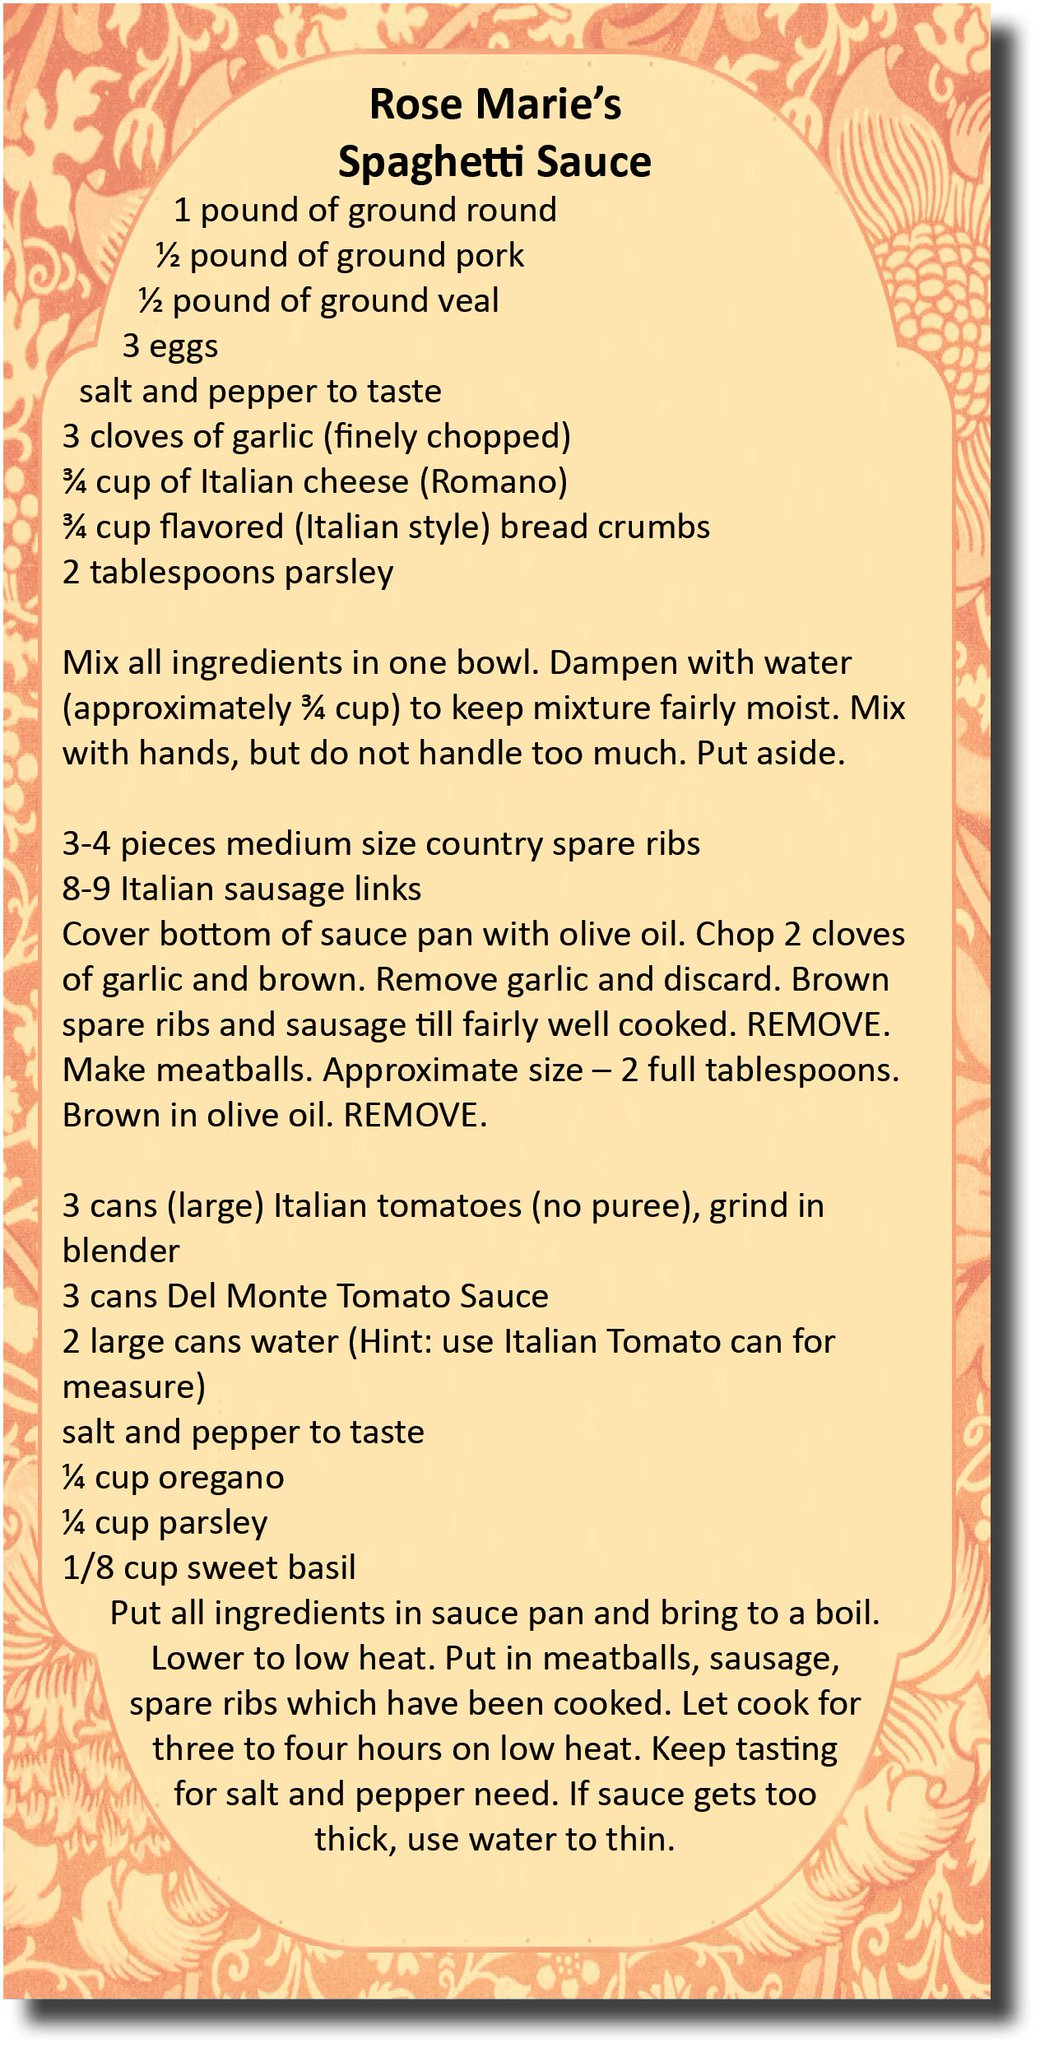 Because you kids asked so nicely, here's my spaghetti sauce recipe & yes I do still make it. https://t.co/SpiThjrSoV